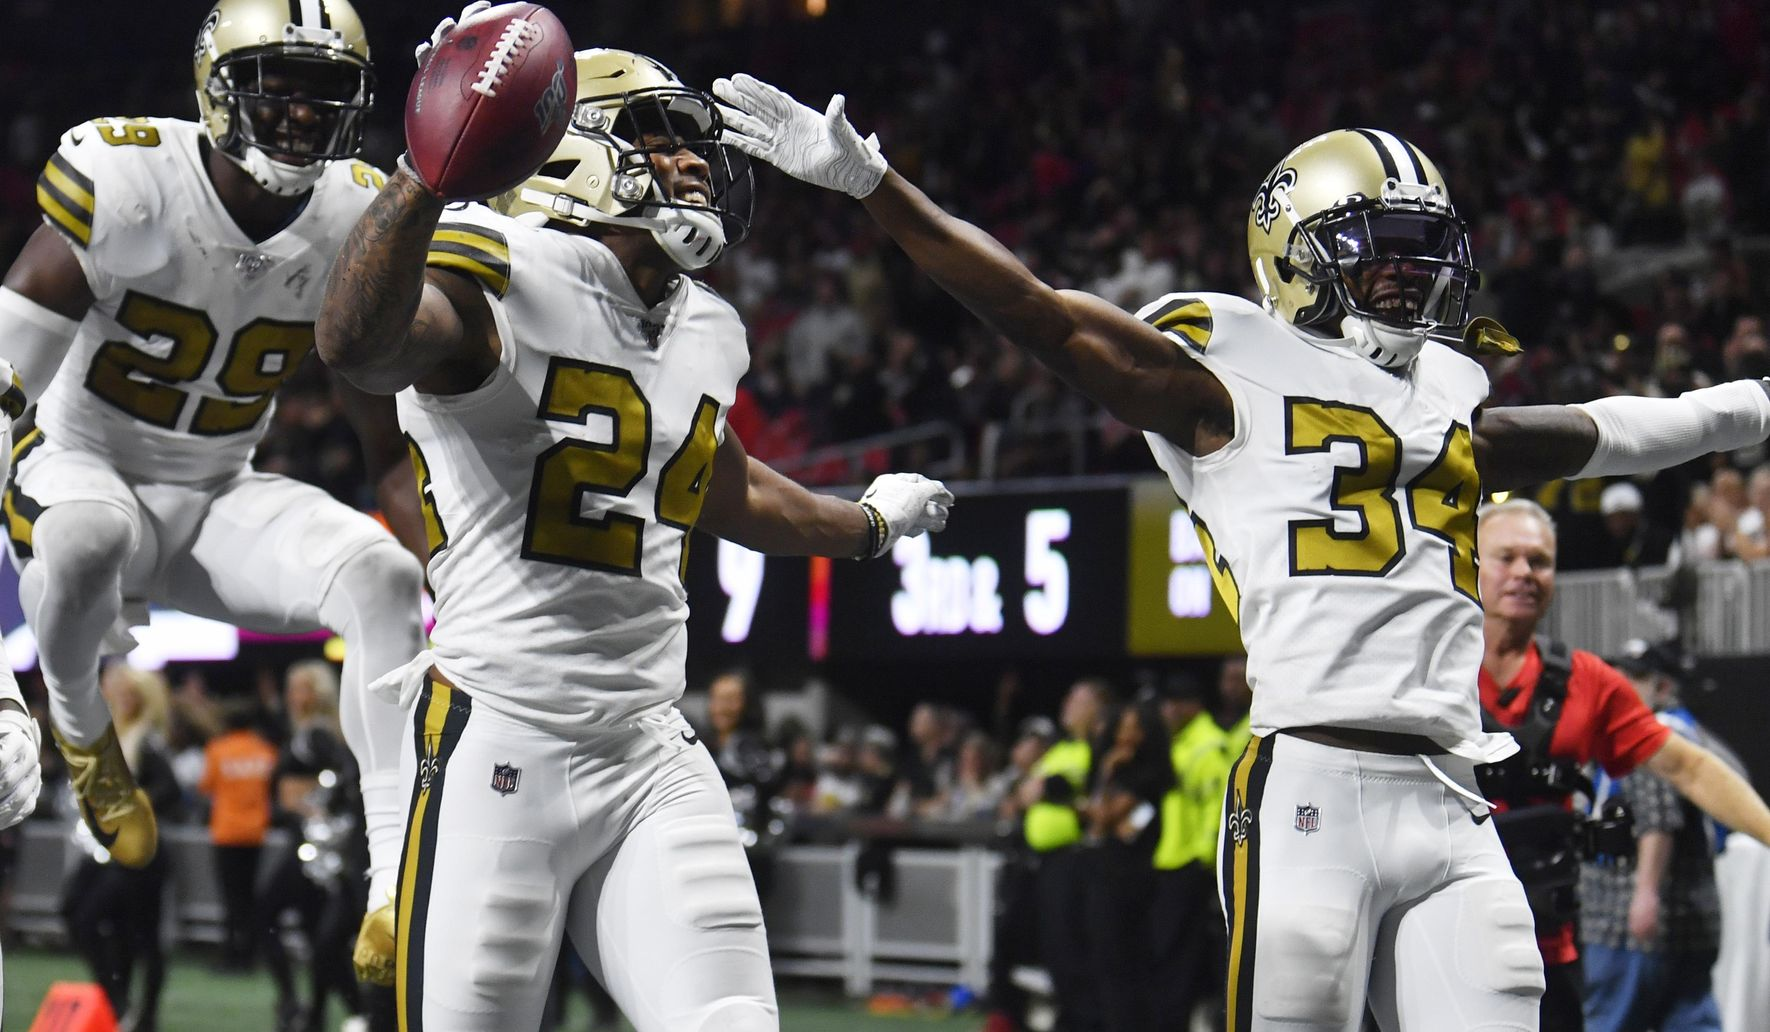 Saints_falcons_football_83281_c0-170-4077-2547_s1770x1032